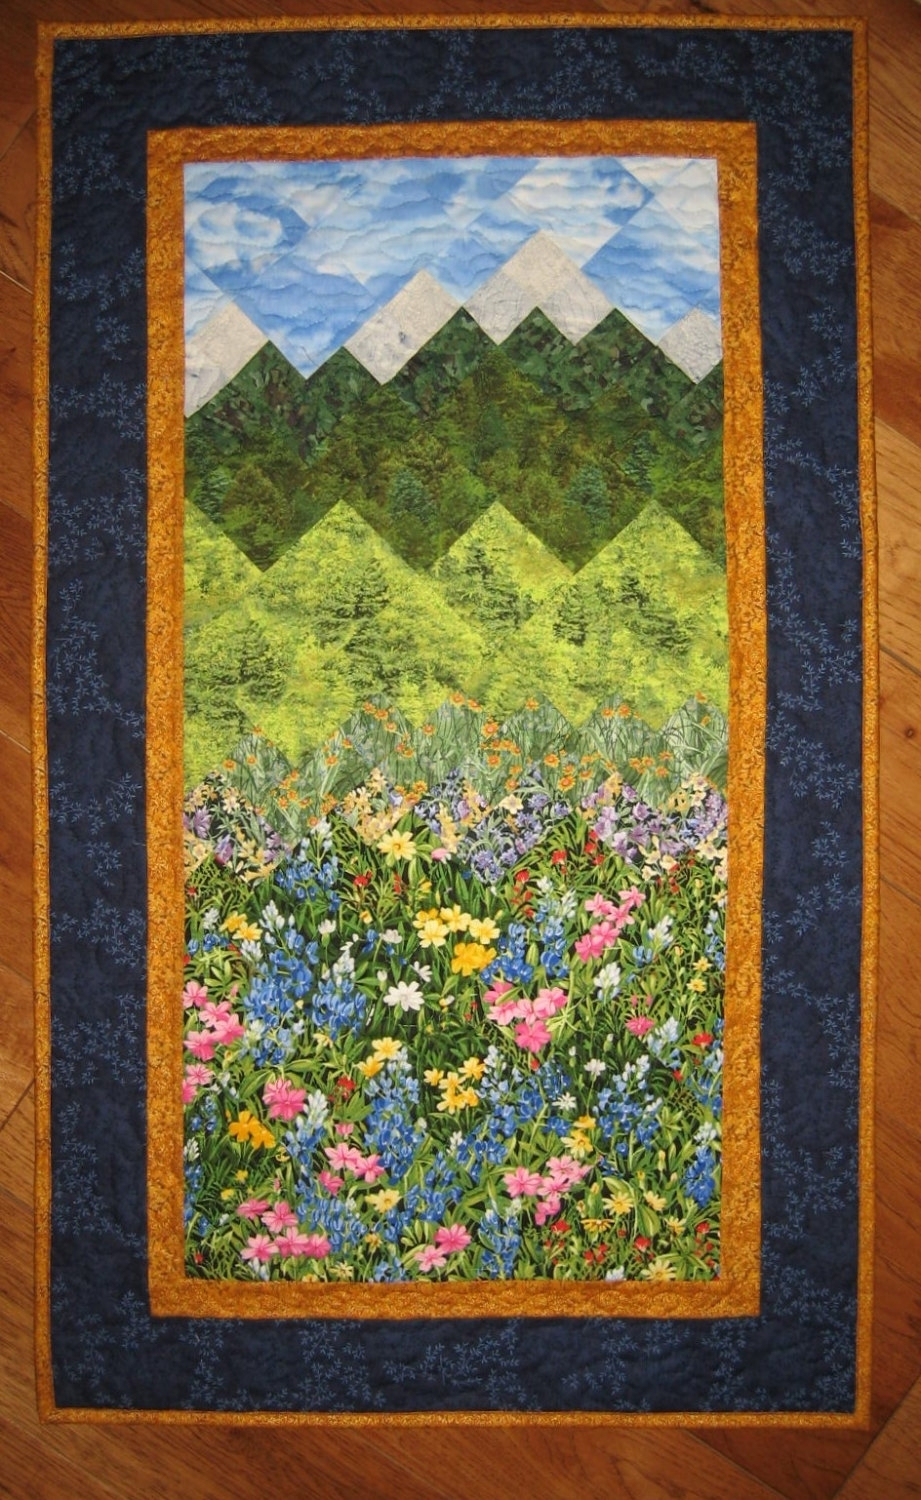 Summer Flowers And Mountains Art Quilt Fabric Wall Hanging Quilted Within Most Recently Released Quilt Fabric Wall Art (View 2 of 15)